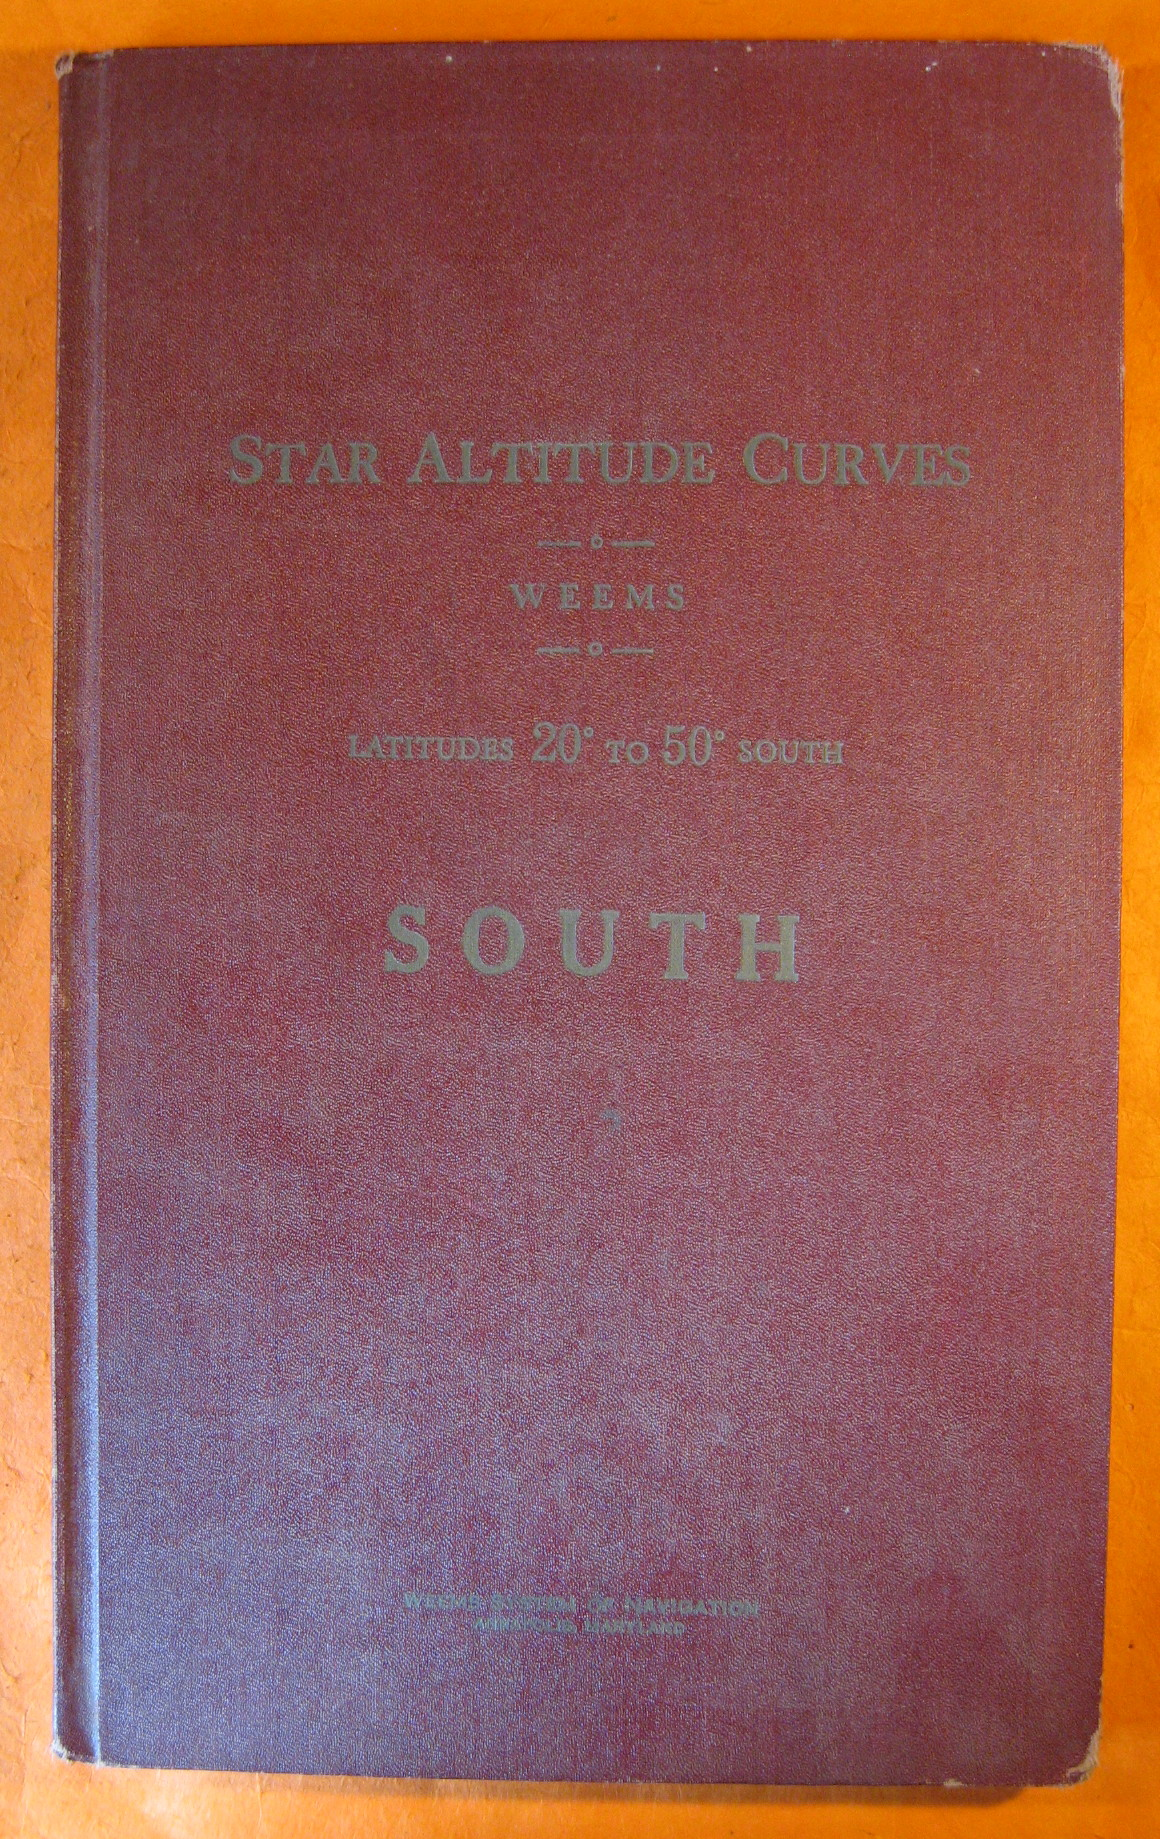 Star Altitude Curves Latitudes 20 Degrees to 50 Degrees South, Weems